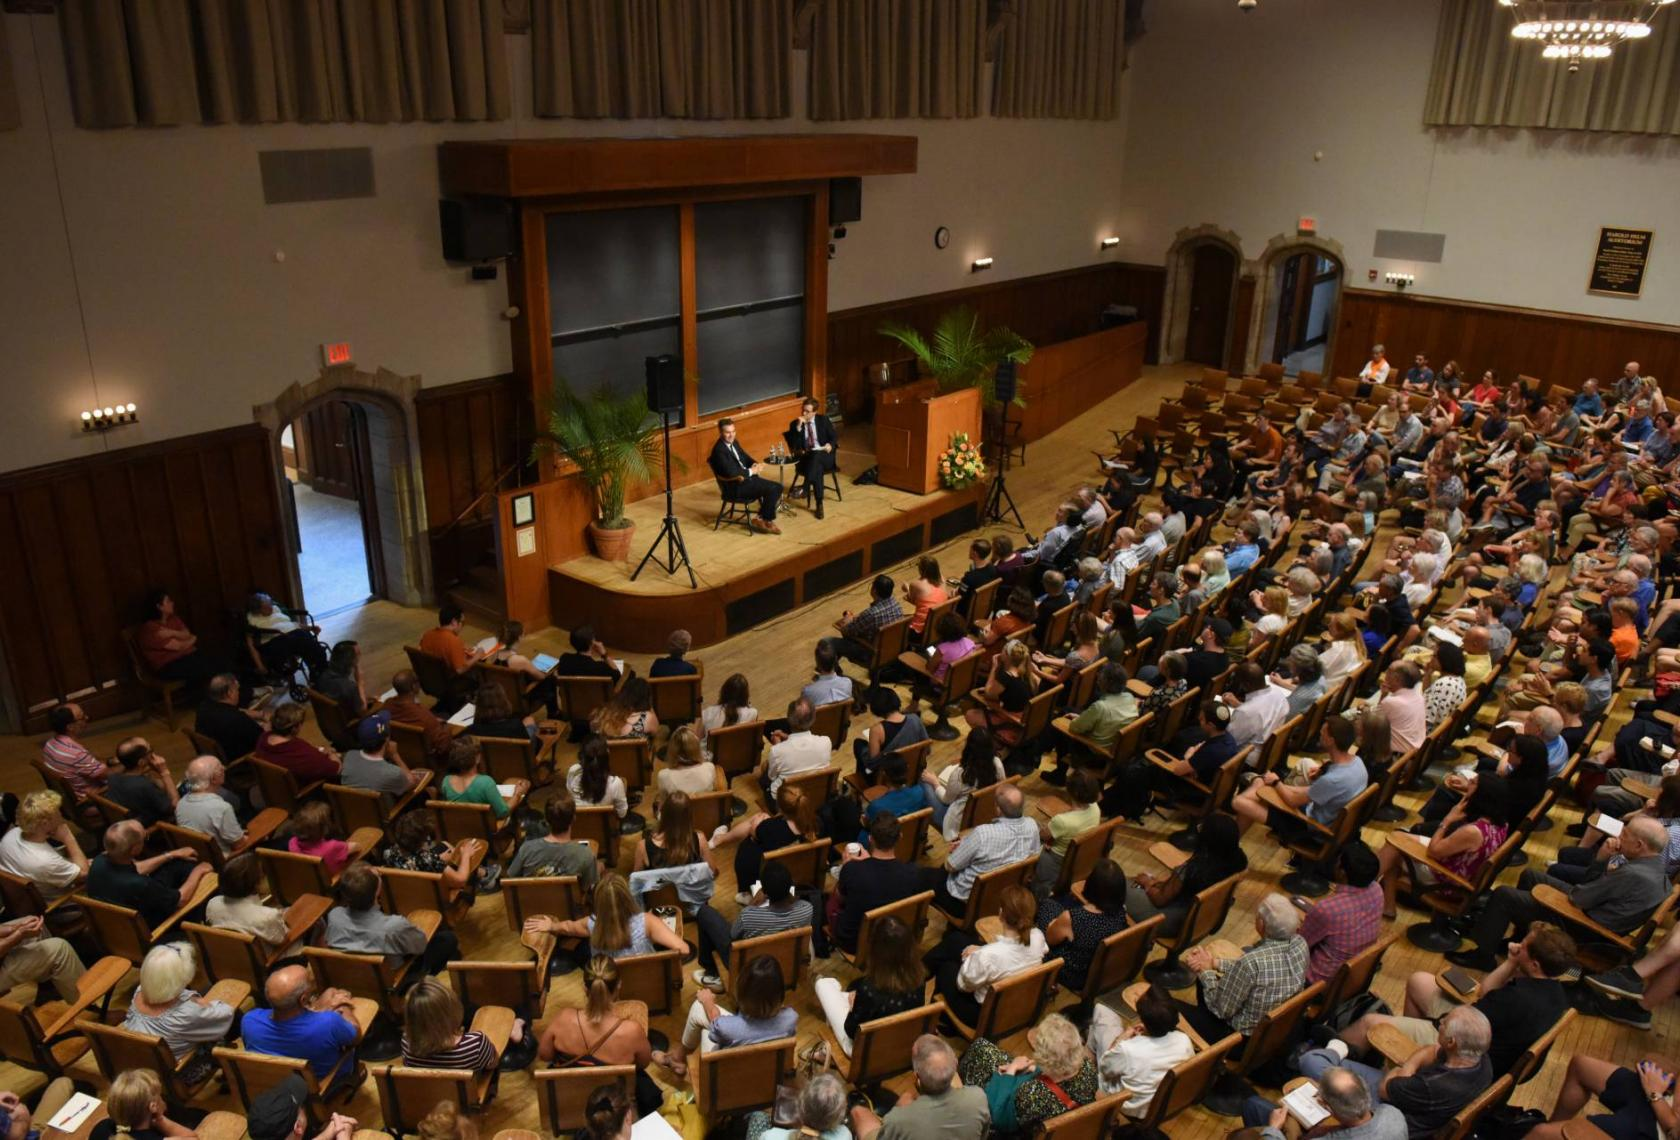 crowd of people attending an event in auditorium